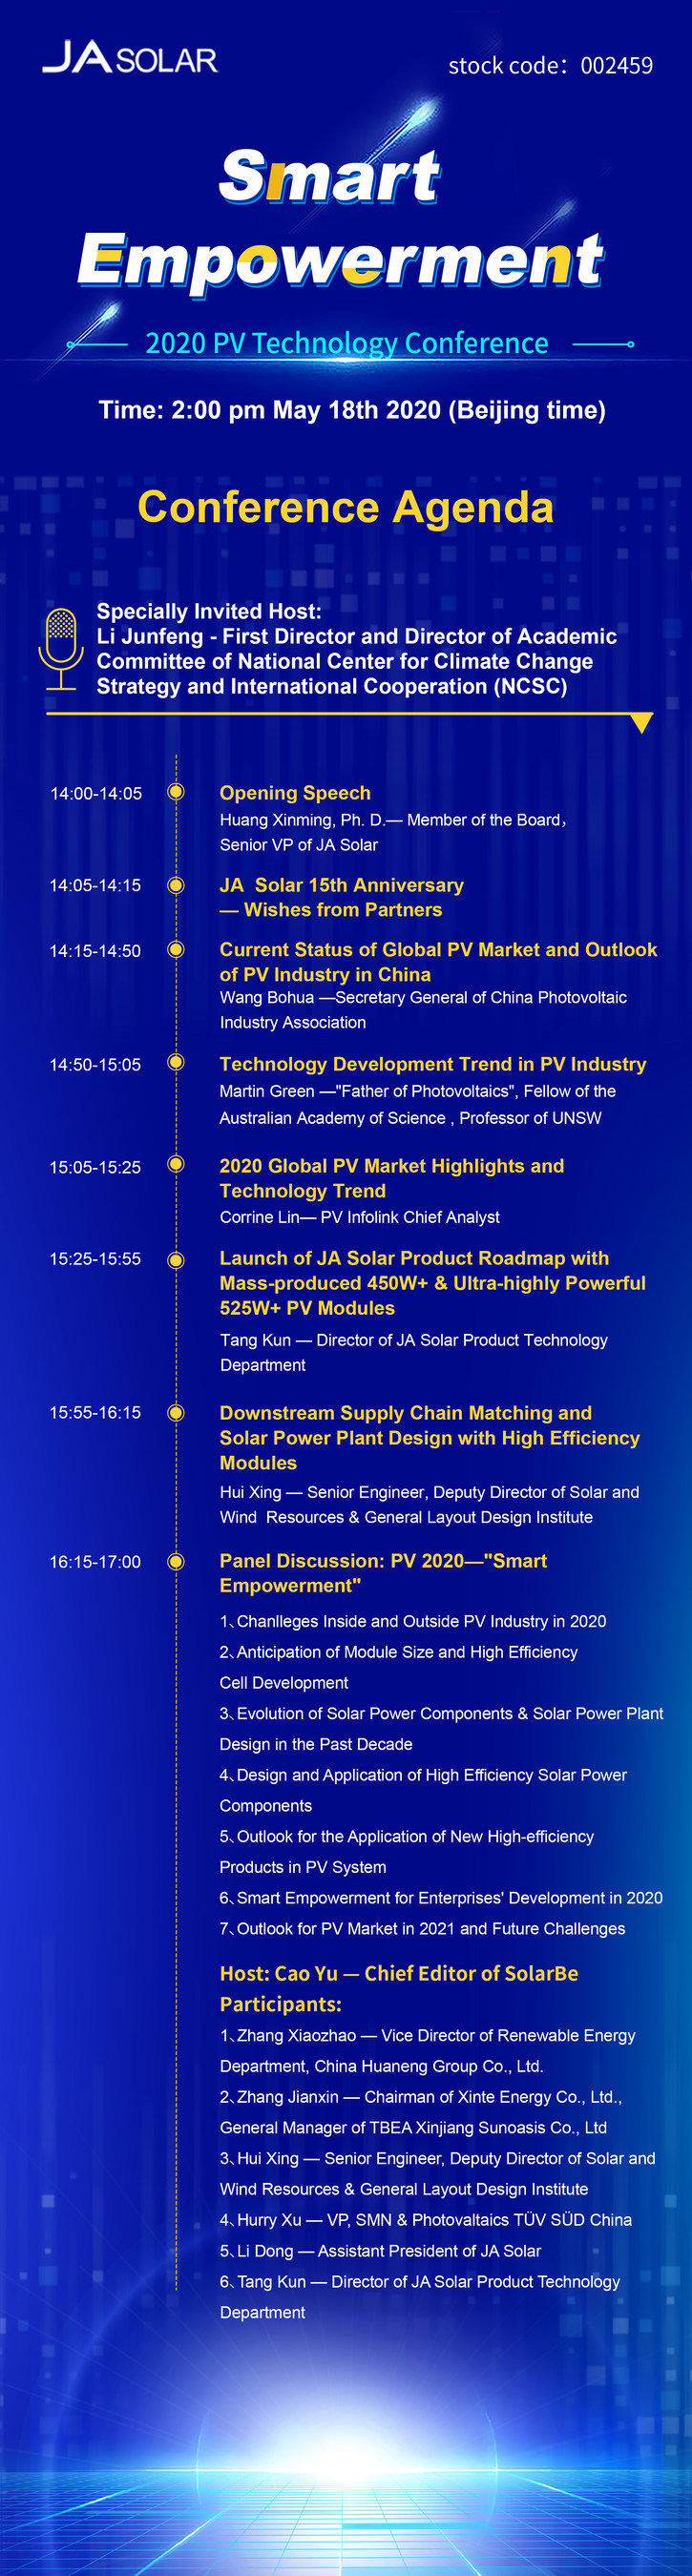 Agenda de la conferencia (PRNewsfoto/JA Solar Co., Ltd.)